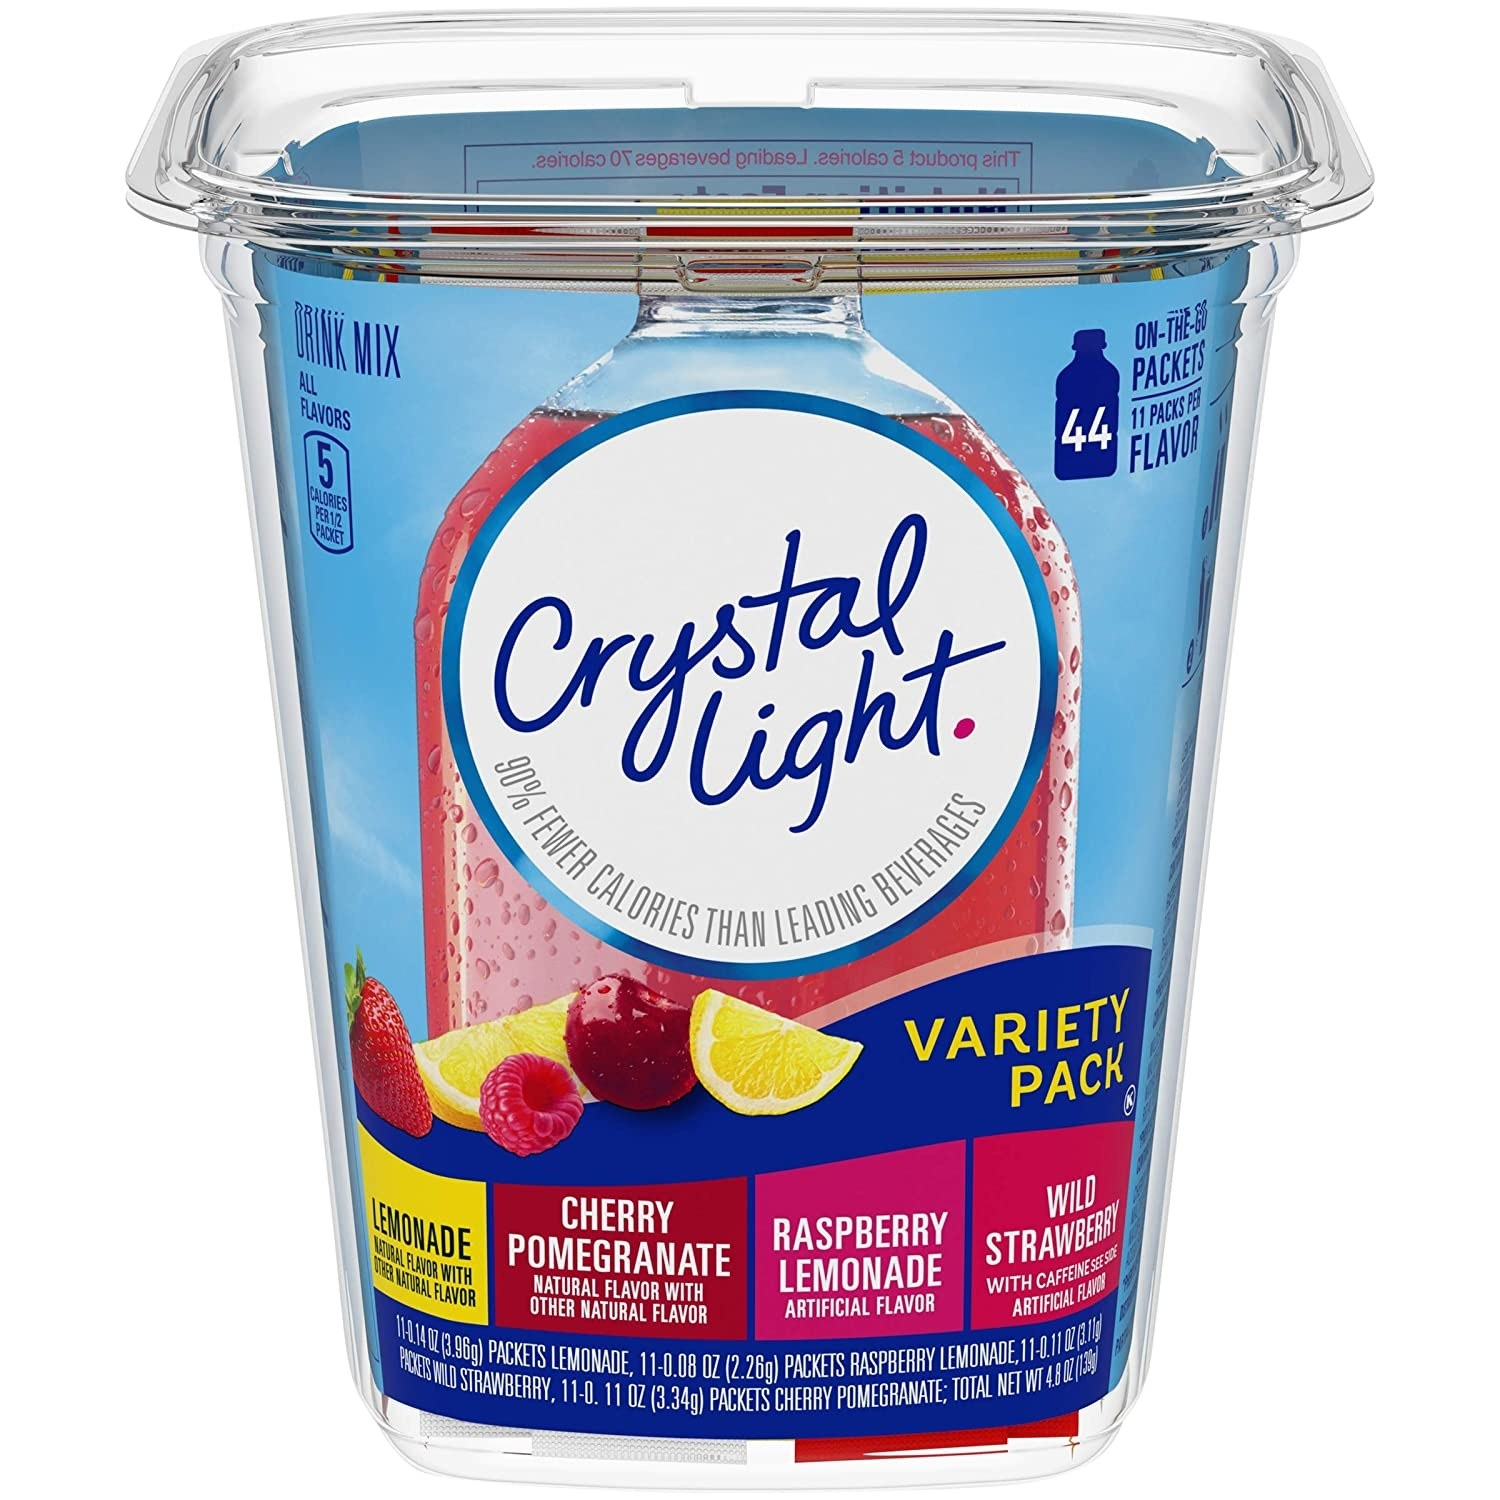 the Crystal Light pack